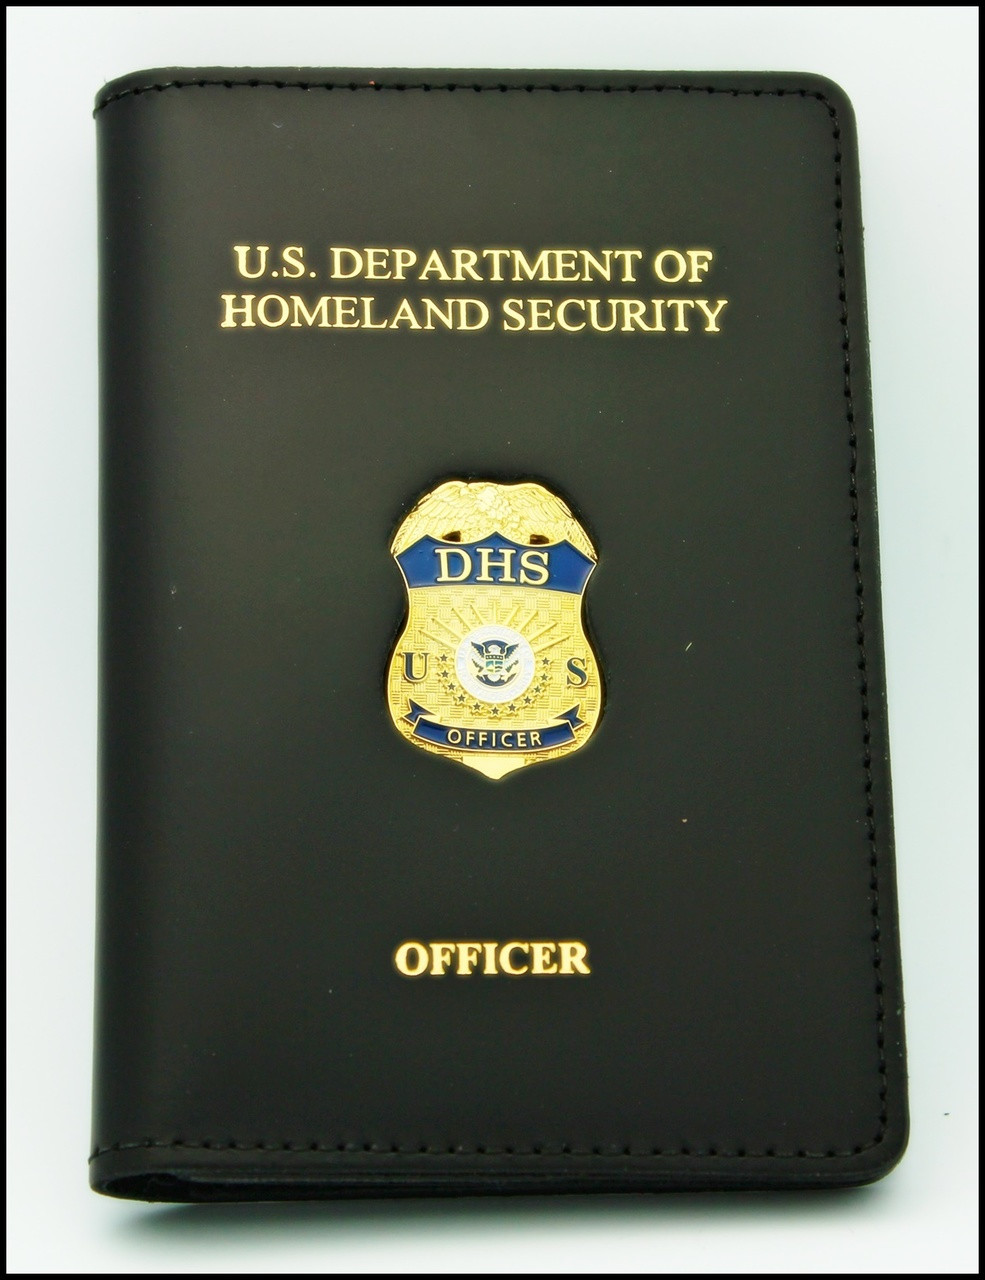 Department of Homeland Security Officer Mini Badge Credential Case - DHS & Officer embossing